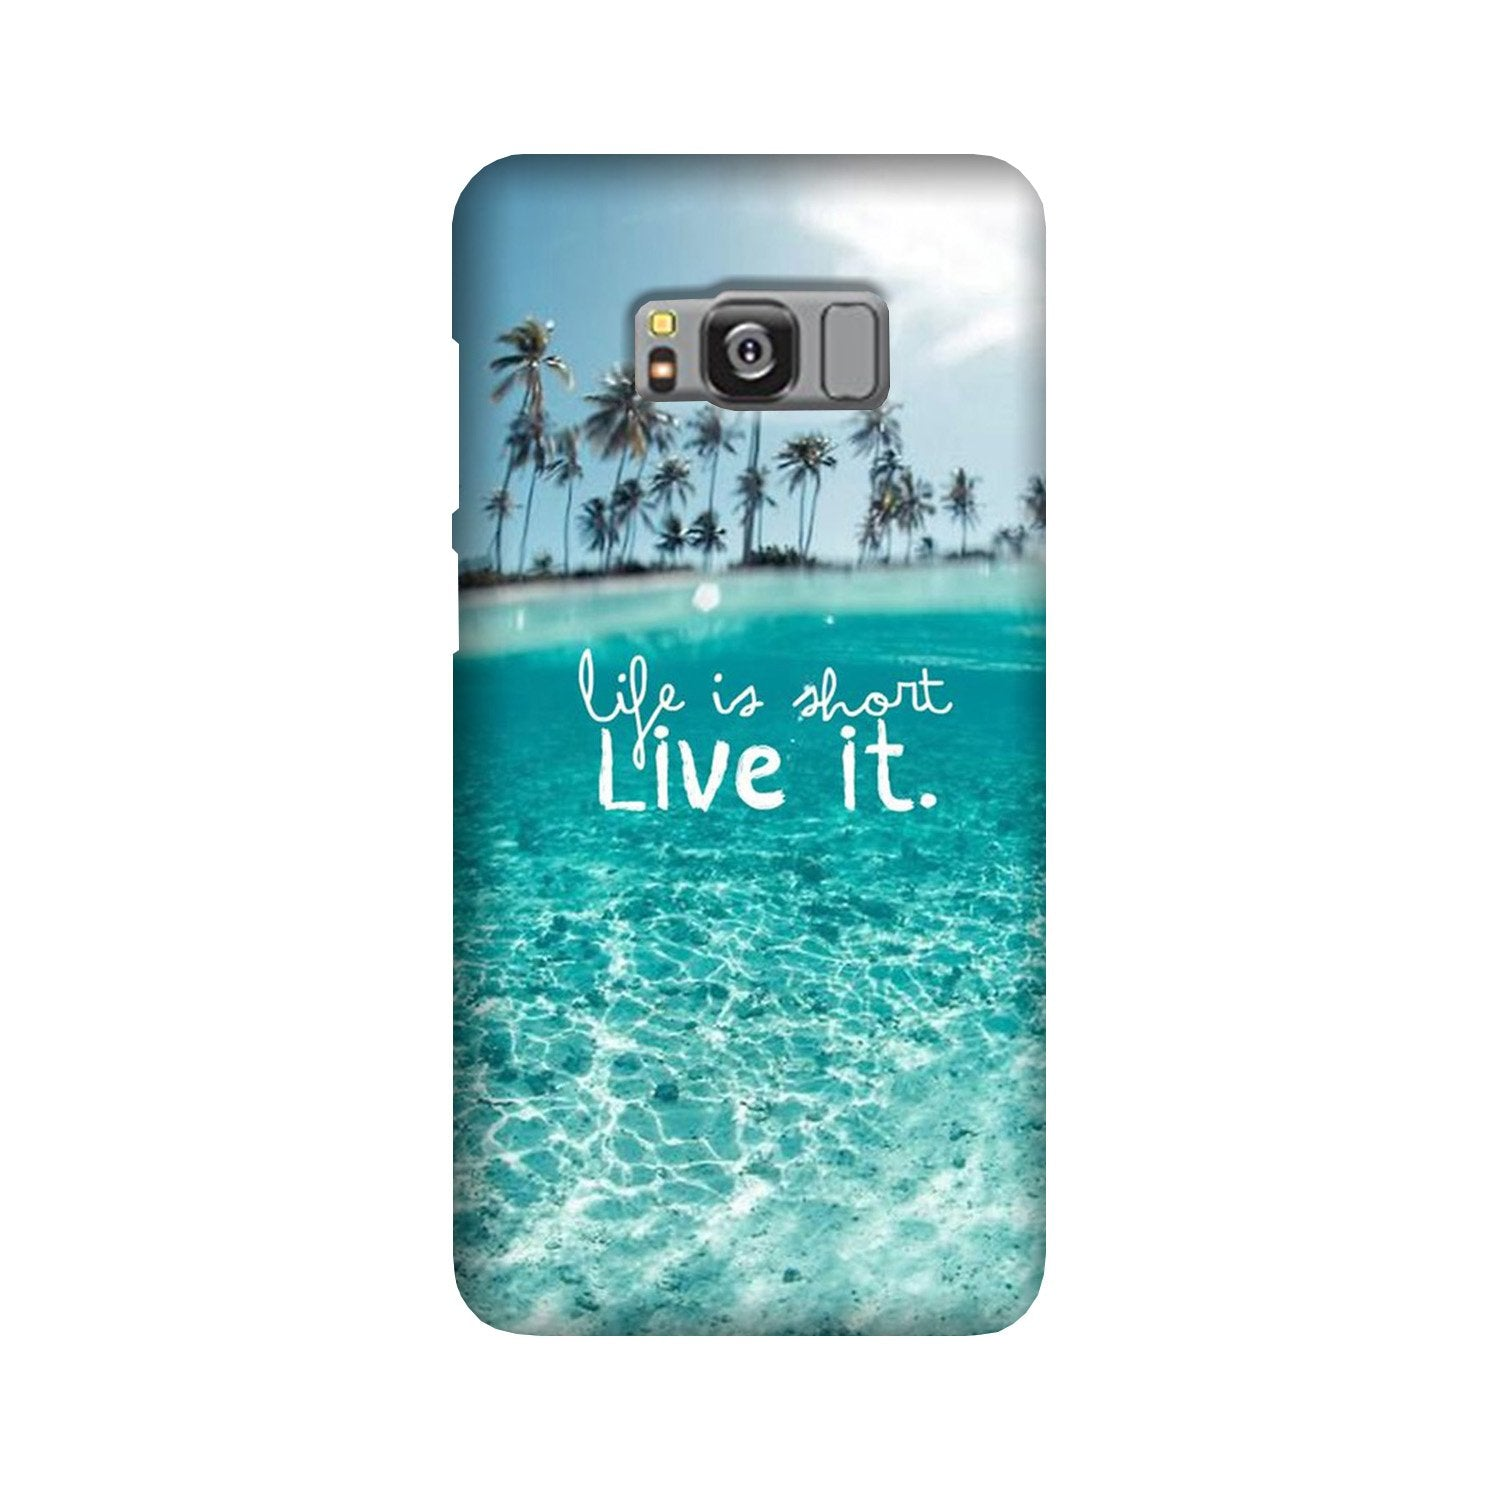 Life is short live it Case for Galaxy S8 Plus